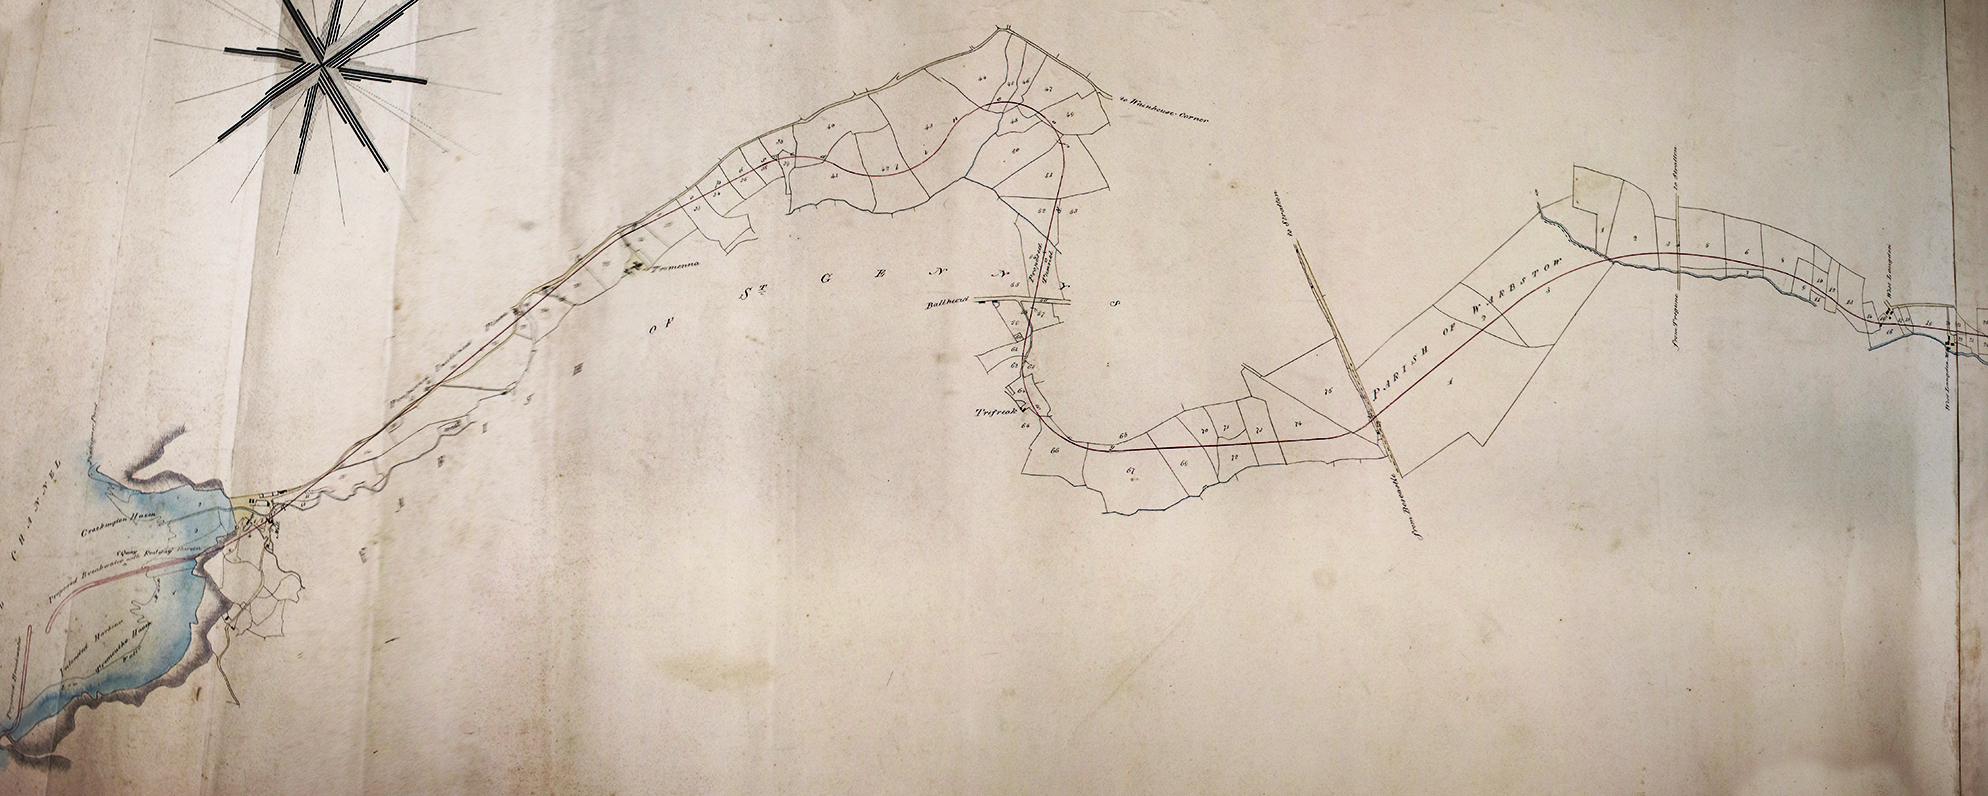 Proposed Tremoutha Railway Line 1836